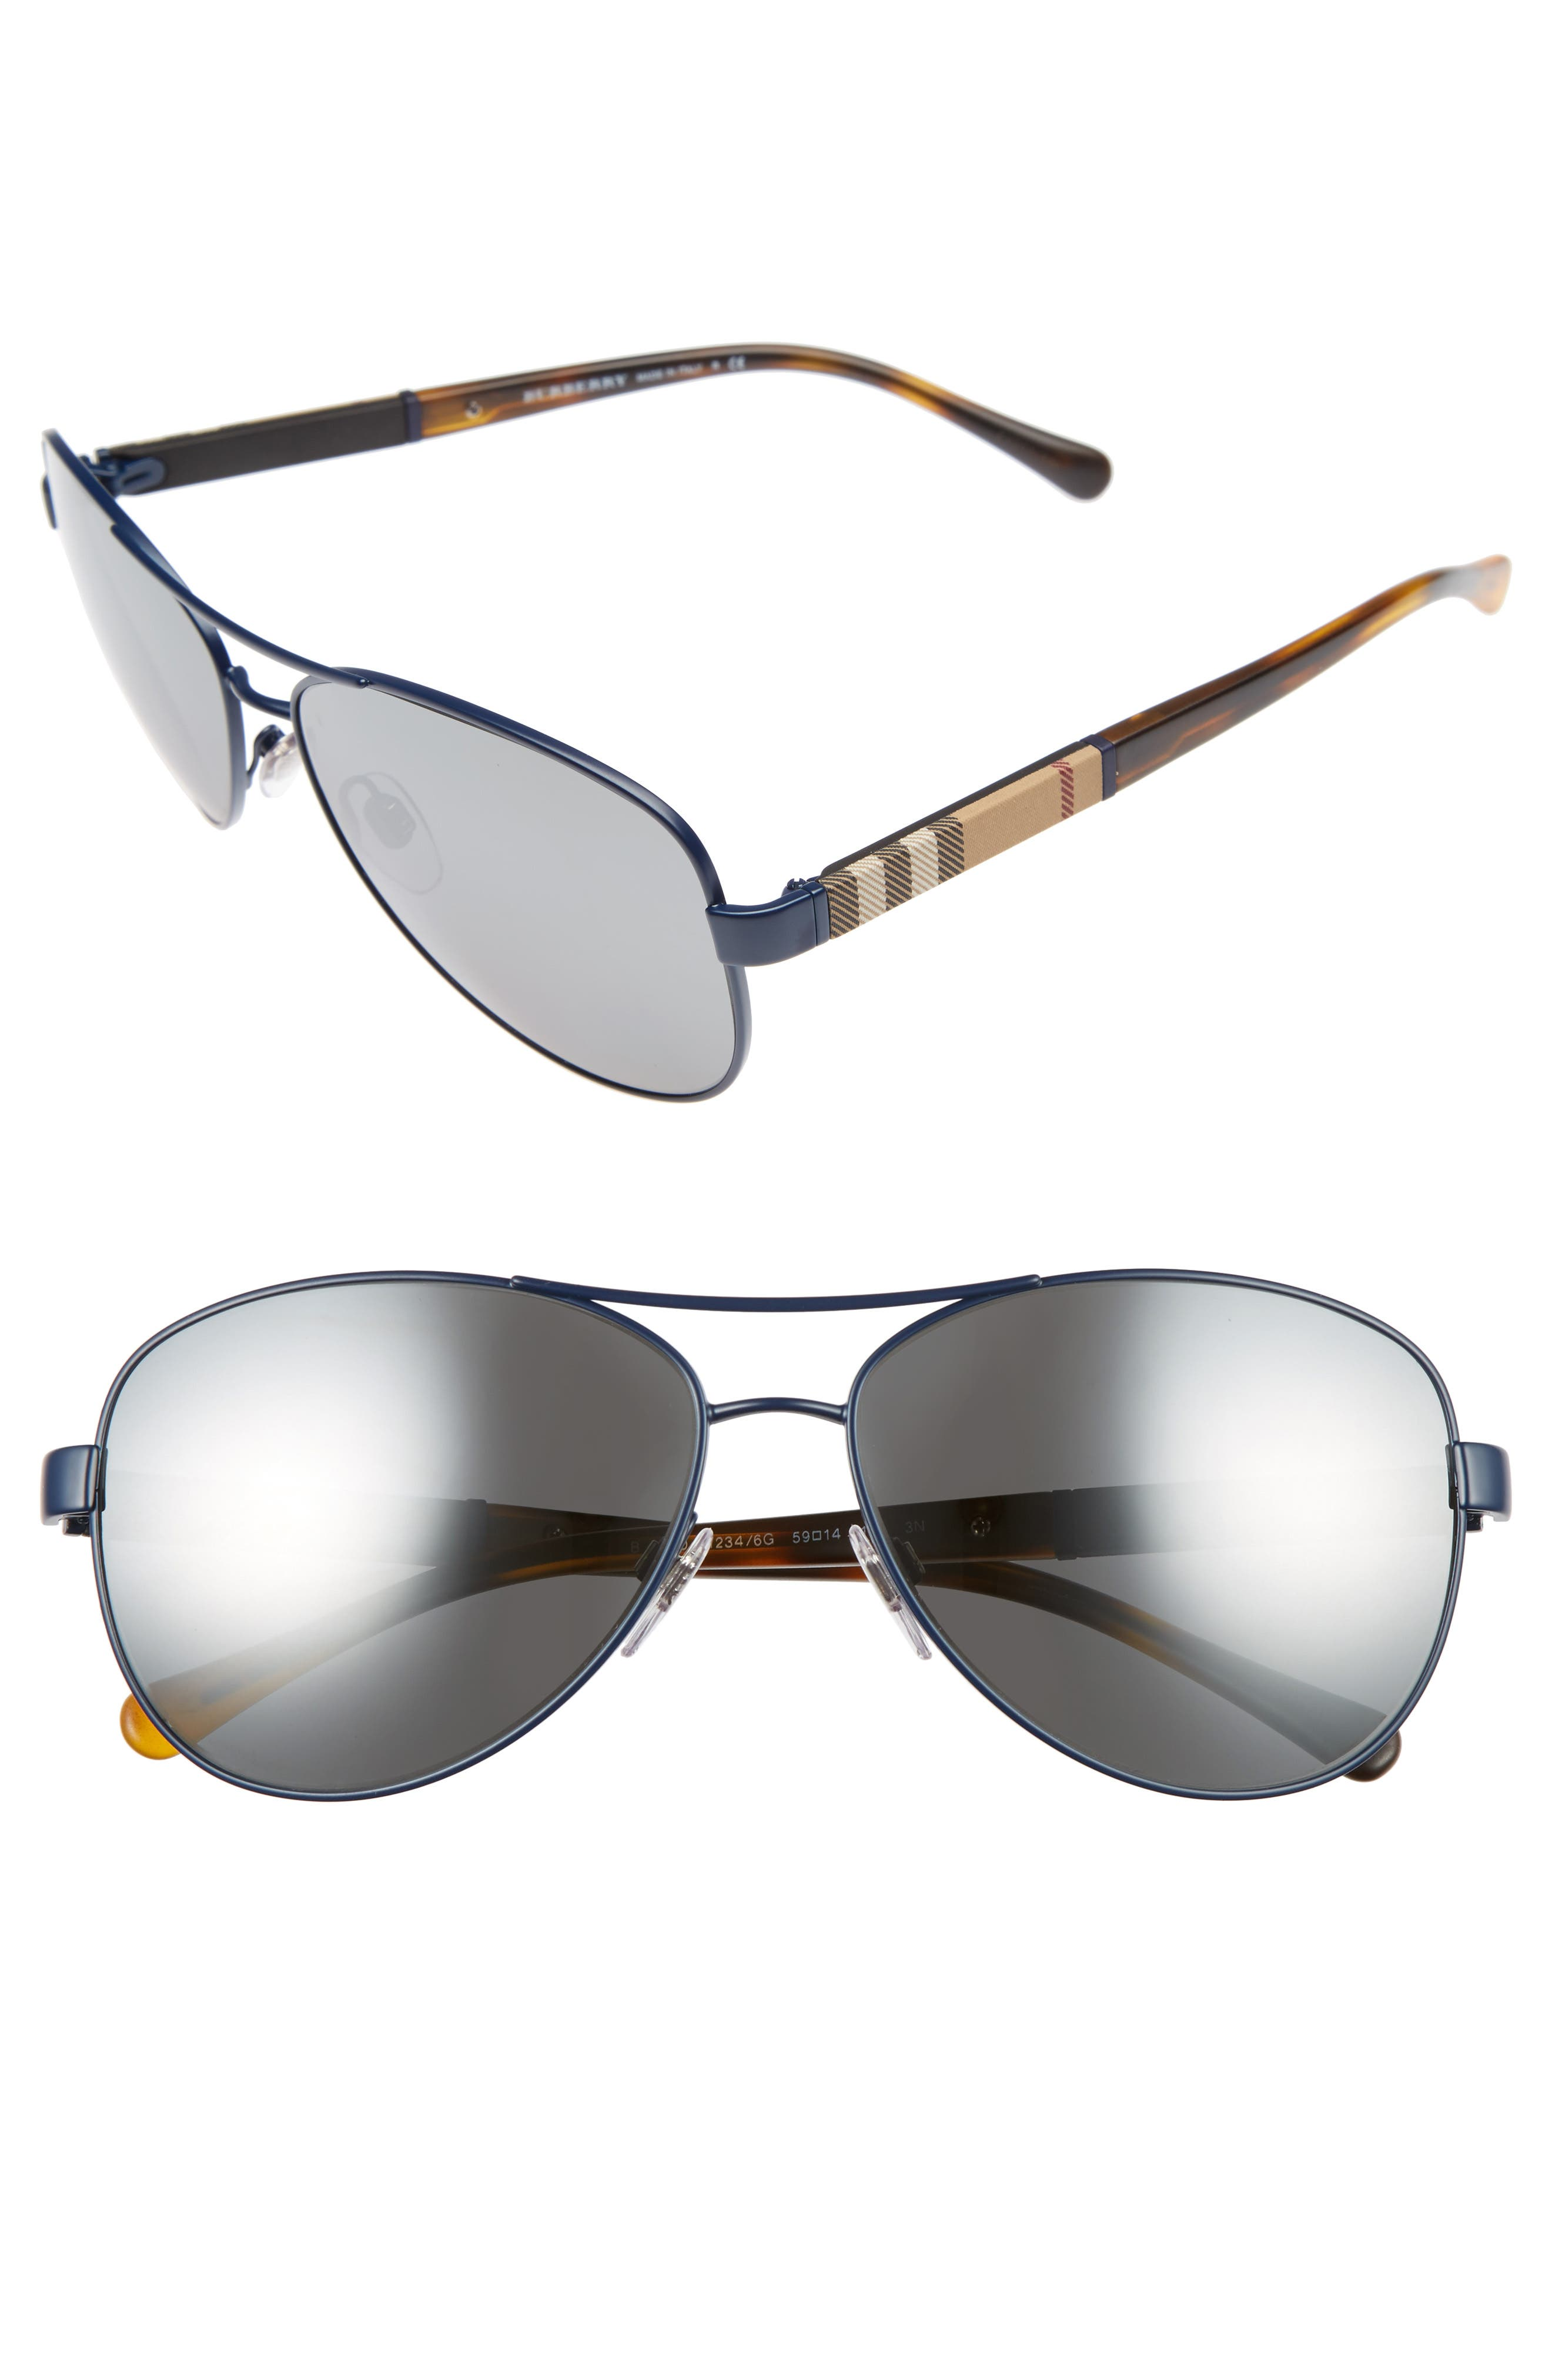 59mm Mirrored Aviator Sunglasses,                             Main thumbnail 1, color,                             400